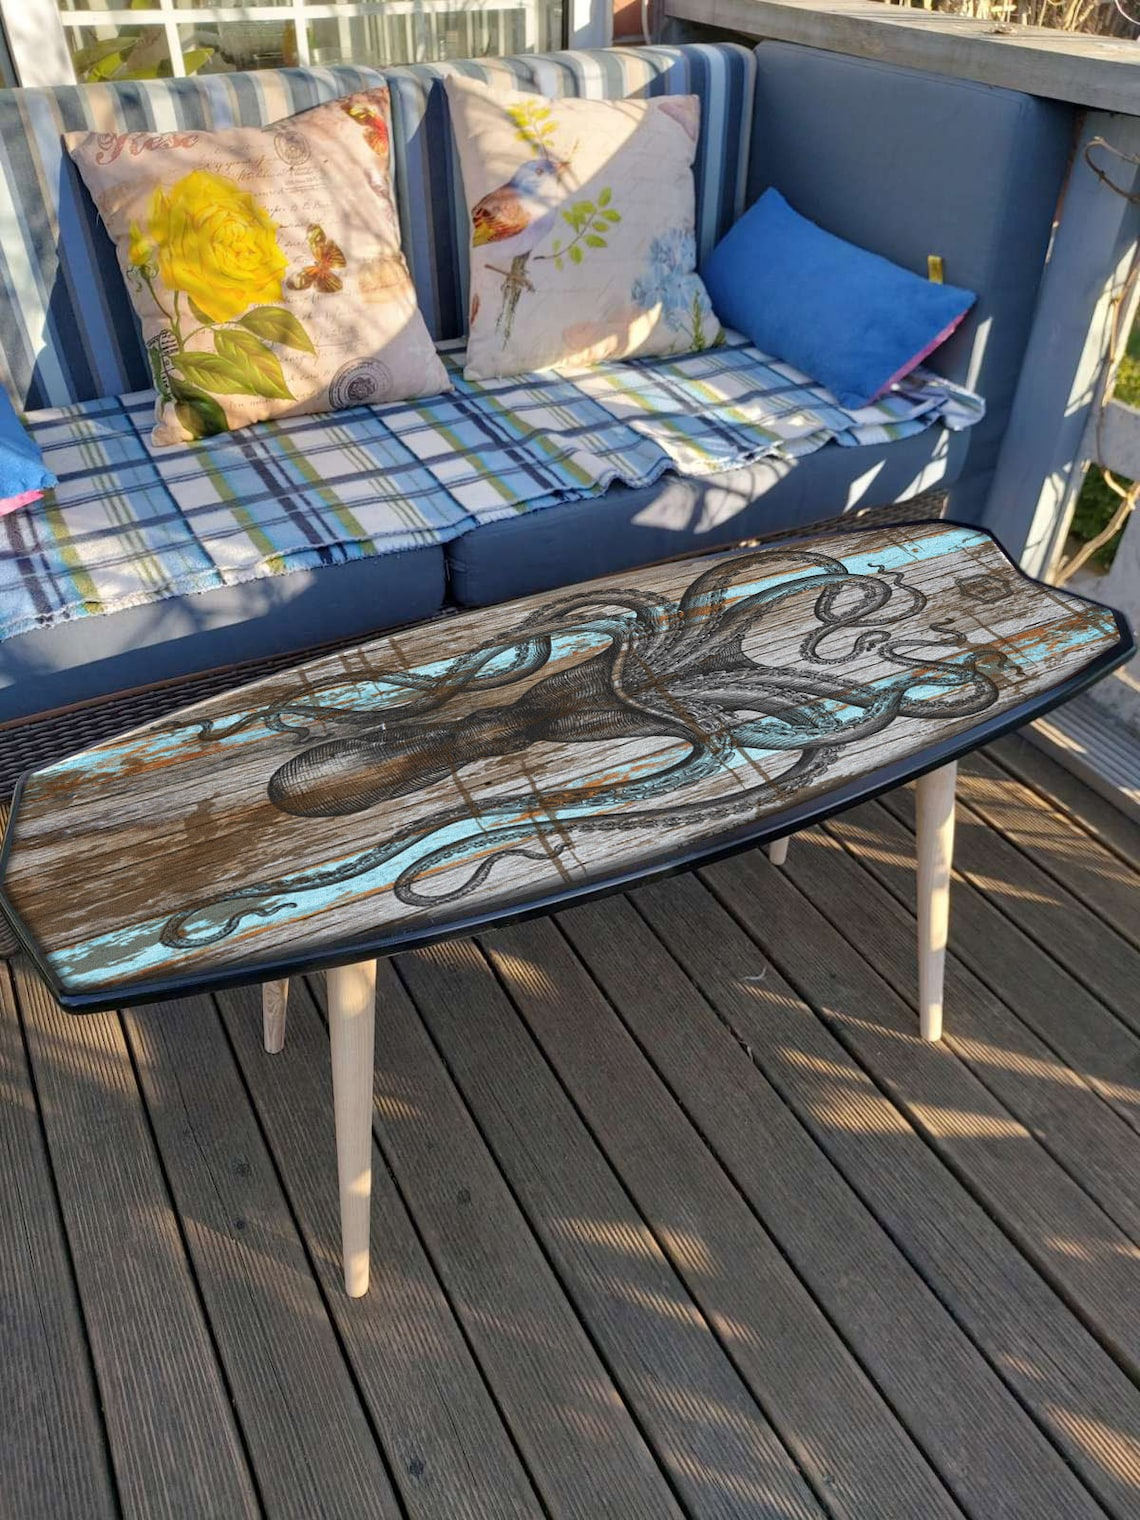 Surfboard Table, Maori, Surfing gift, Bar Decor, Beach Decor, Surfing Art Decor